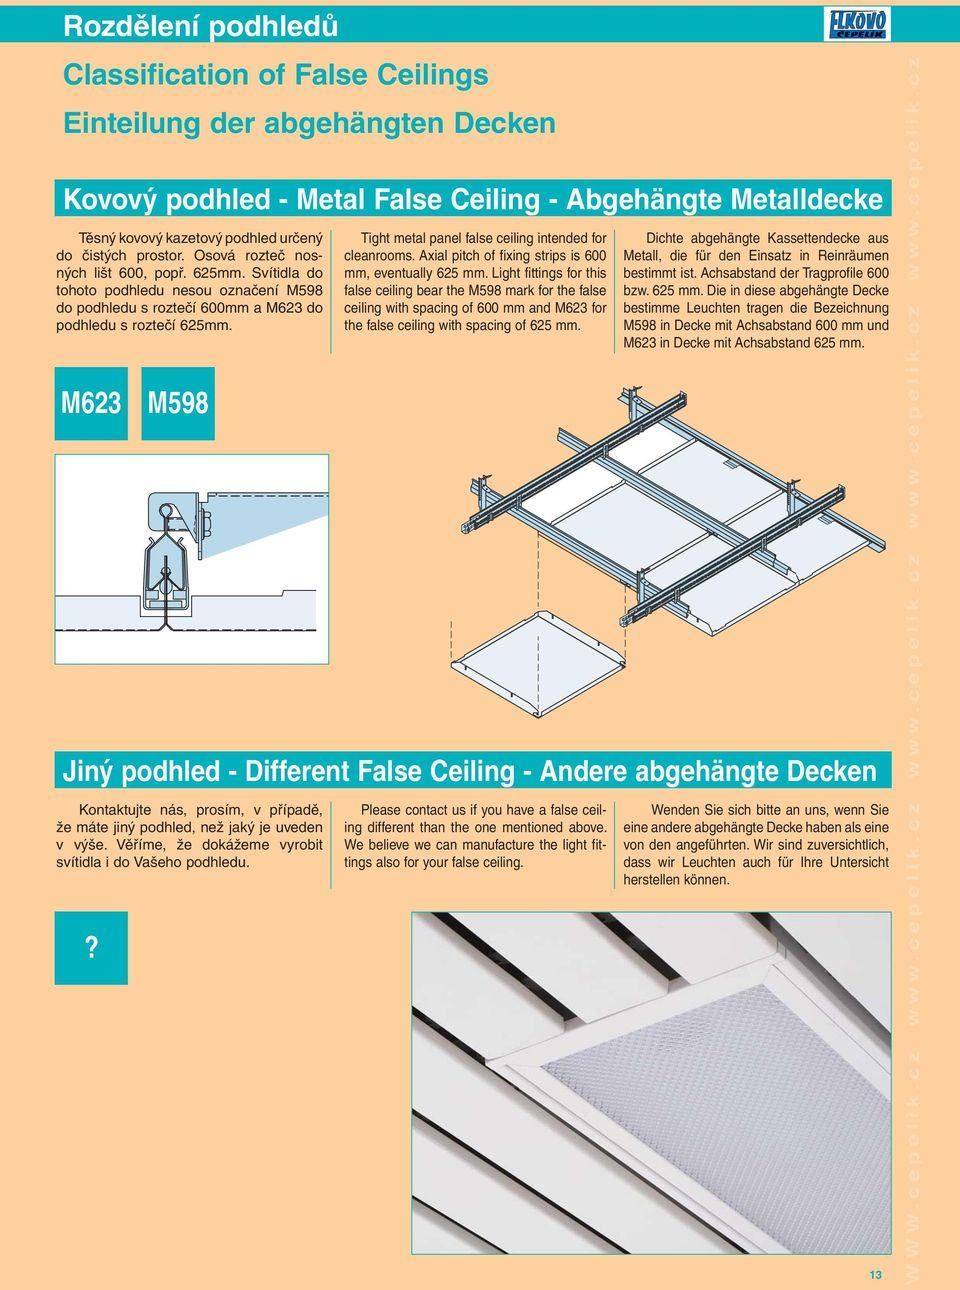 M623 M598 Tight metal panel false ceiling intended for cleanrooms. Axial pitch of fixing strips is 600 mm, eventually 625 mm.